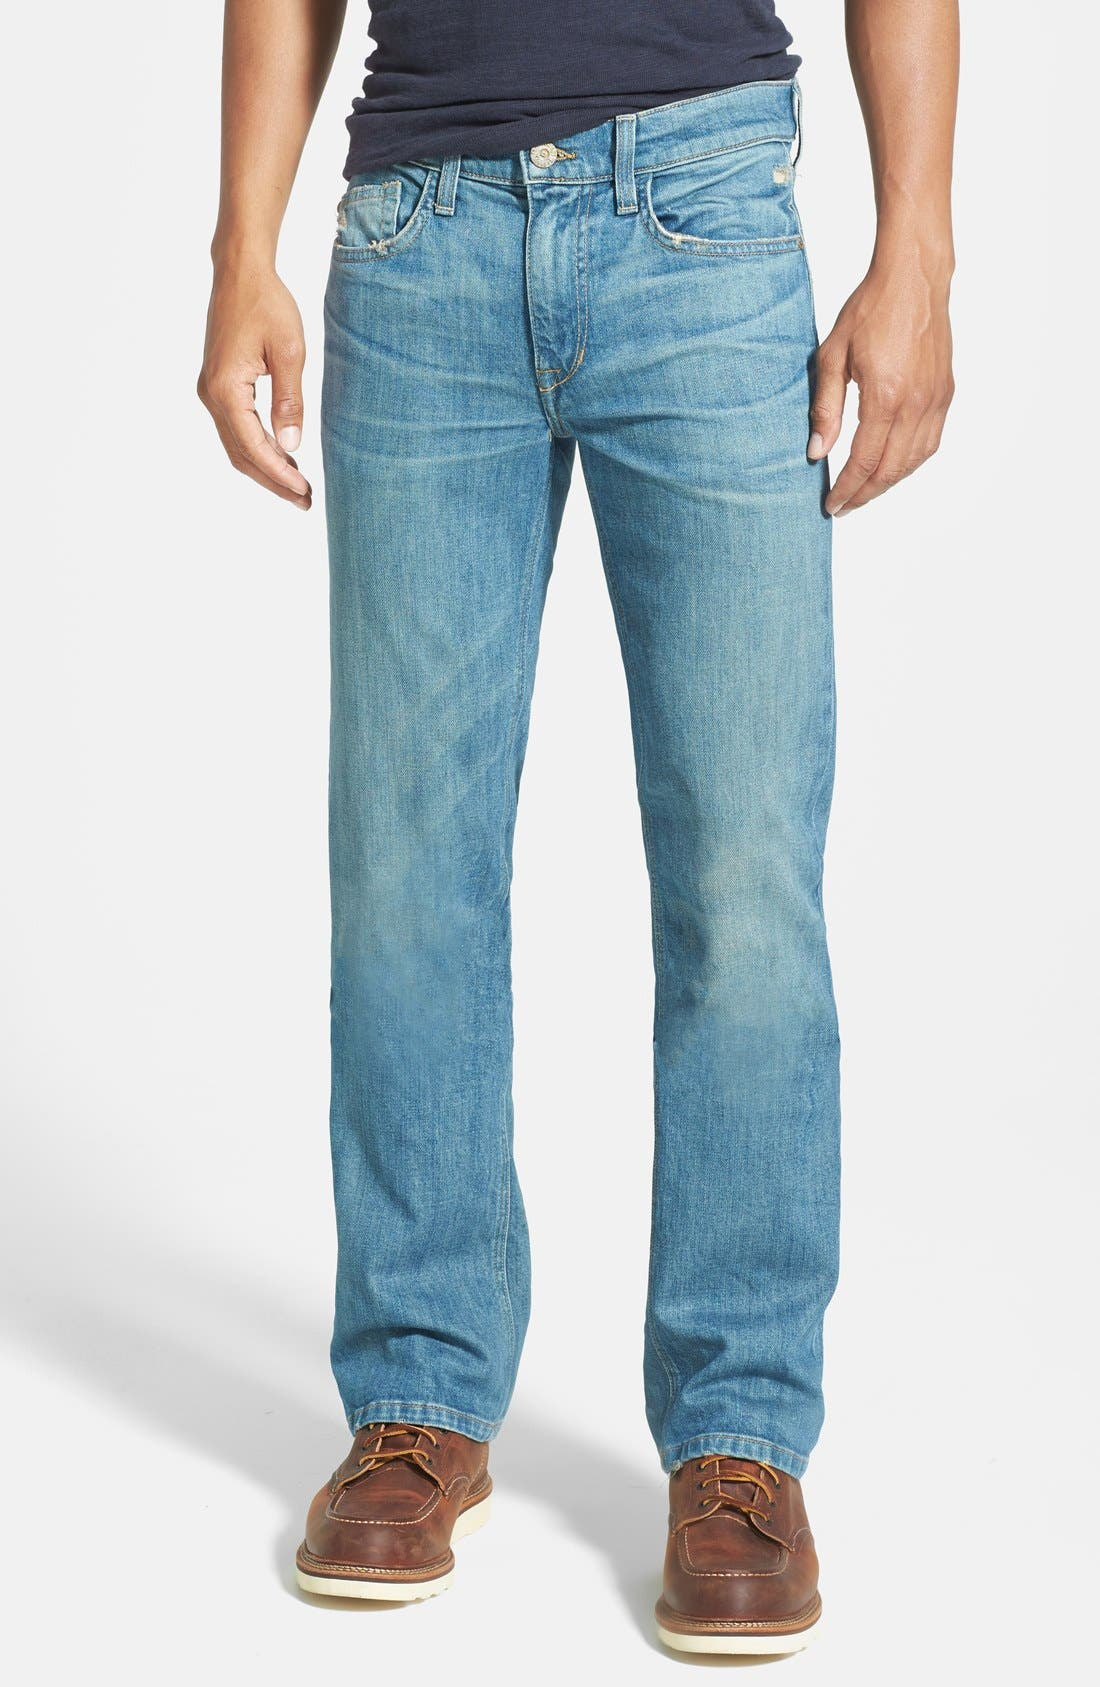 Alternate Image 1 Selected - Joe's 'Rocker' Bootcut Jeans (Tumas)